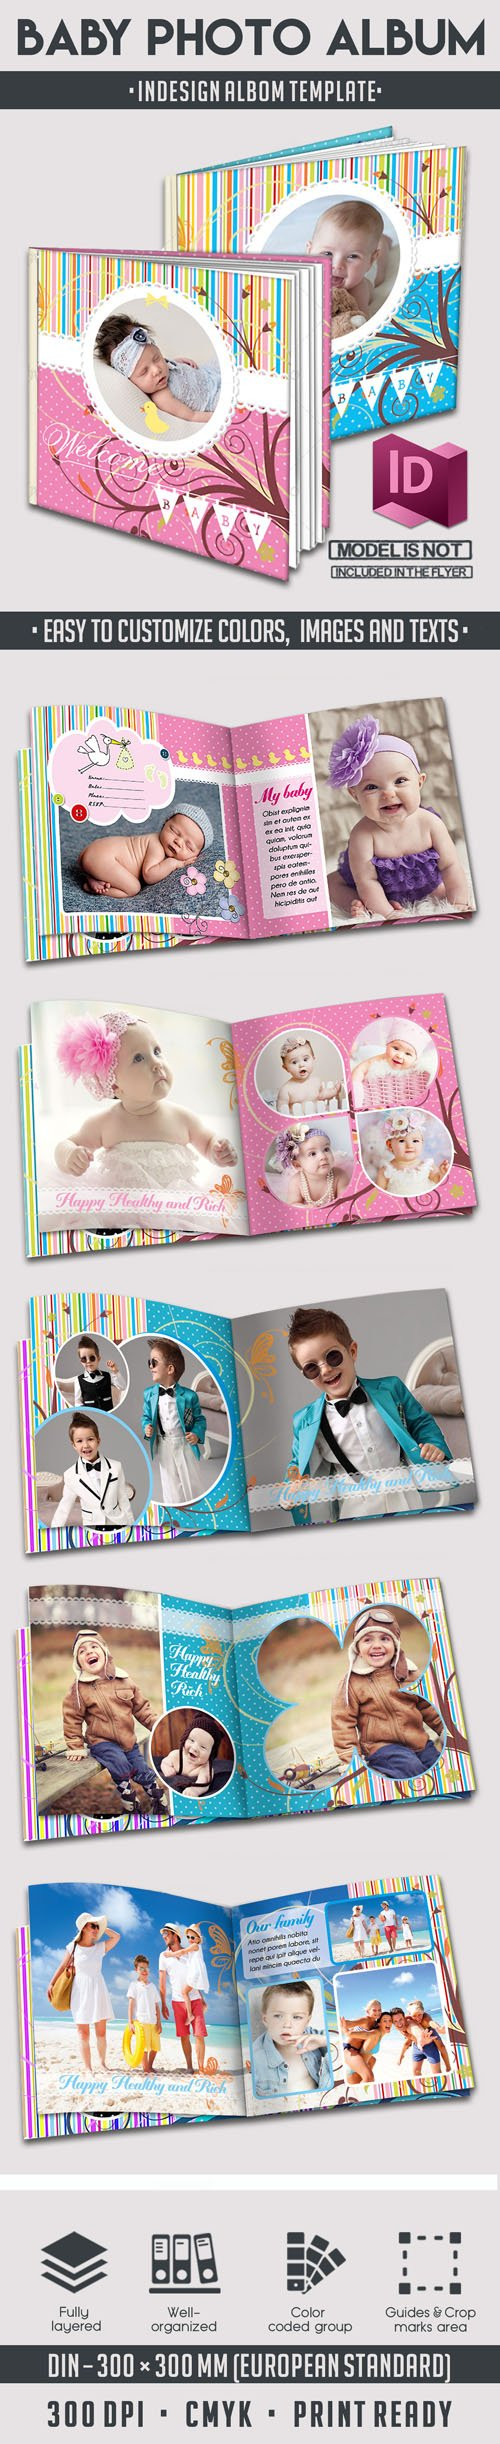 Baby Photo Album - InDesign INDD Templates - 12 Pages